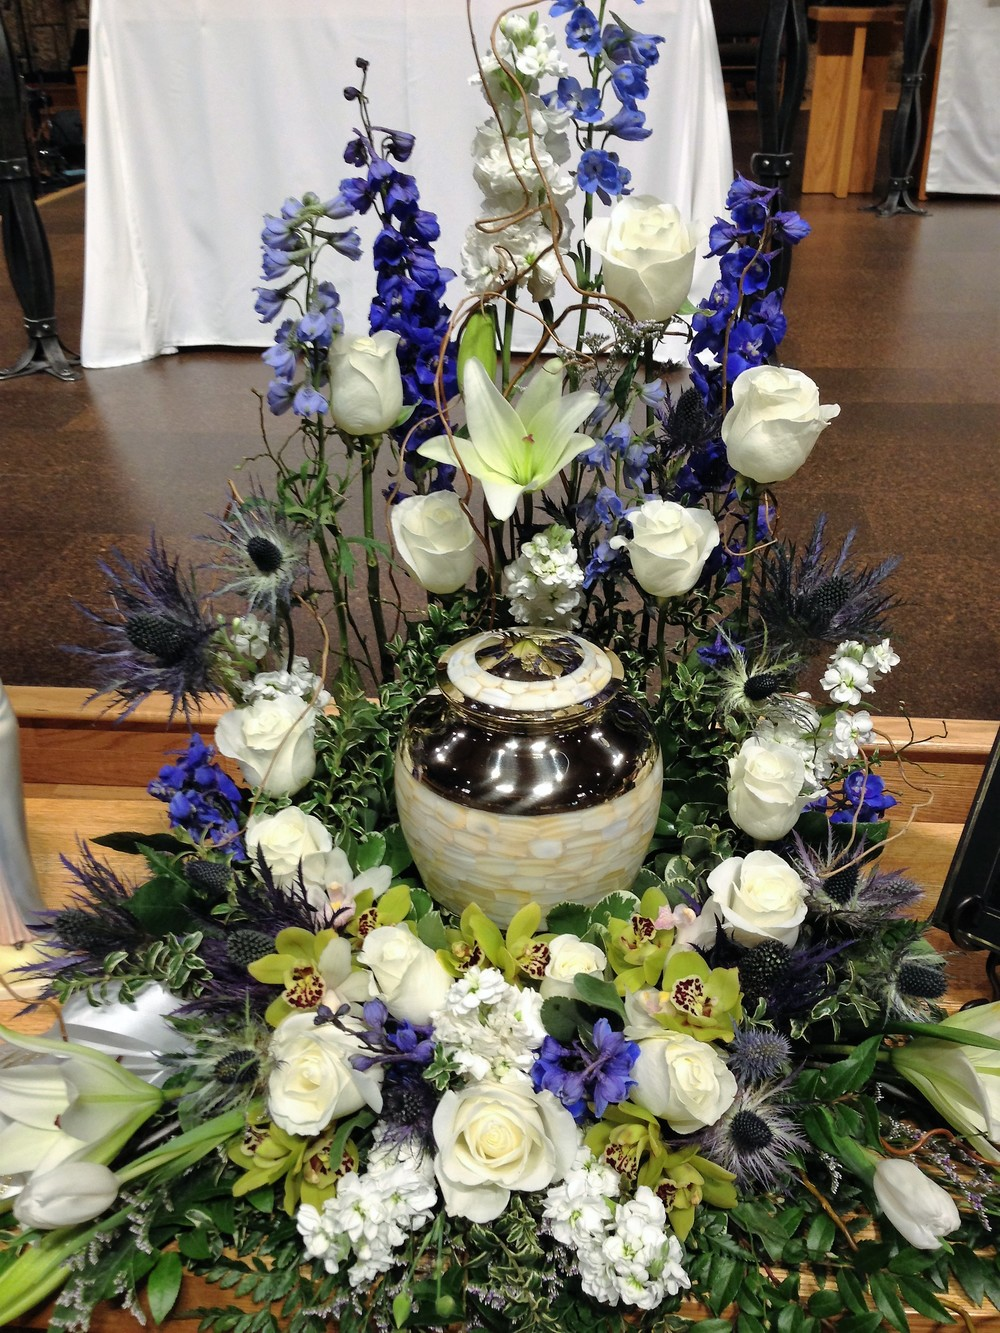 #20 White and blue urn surround